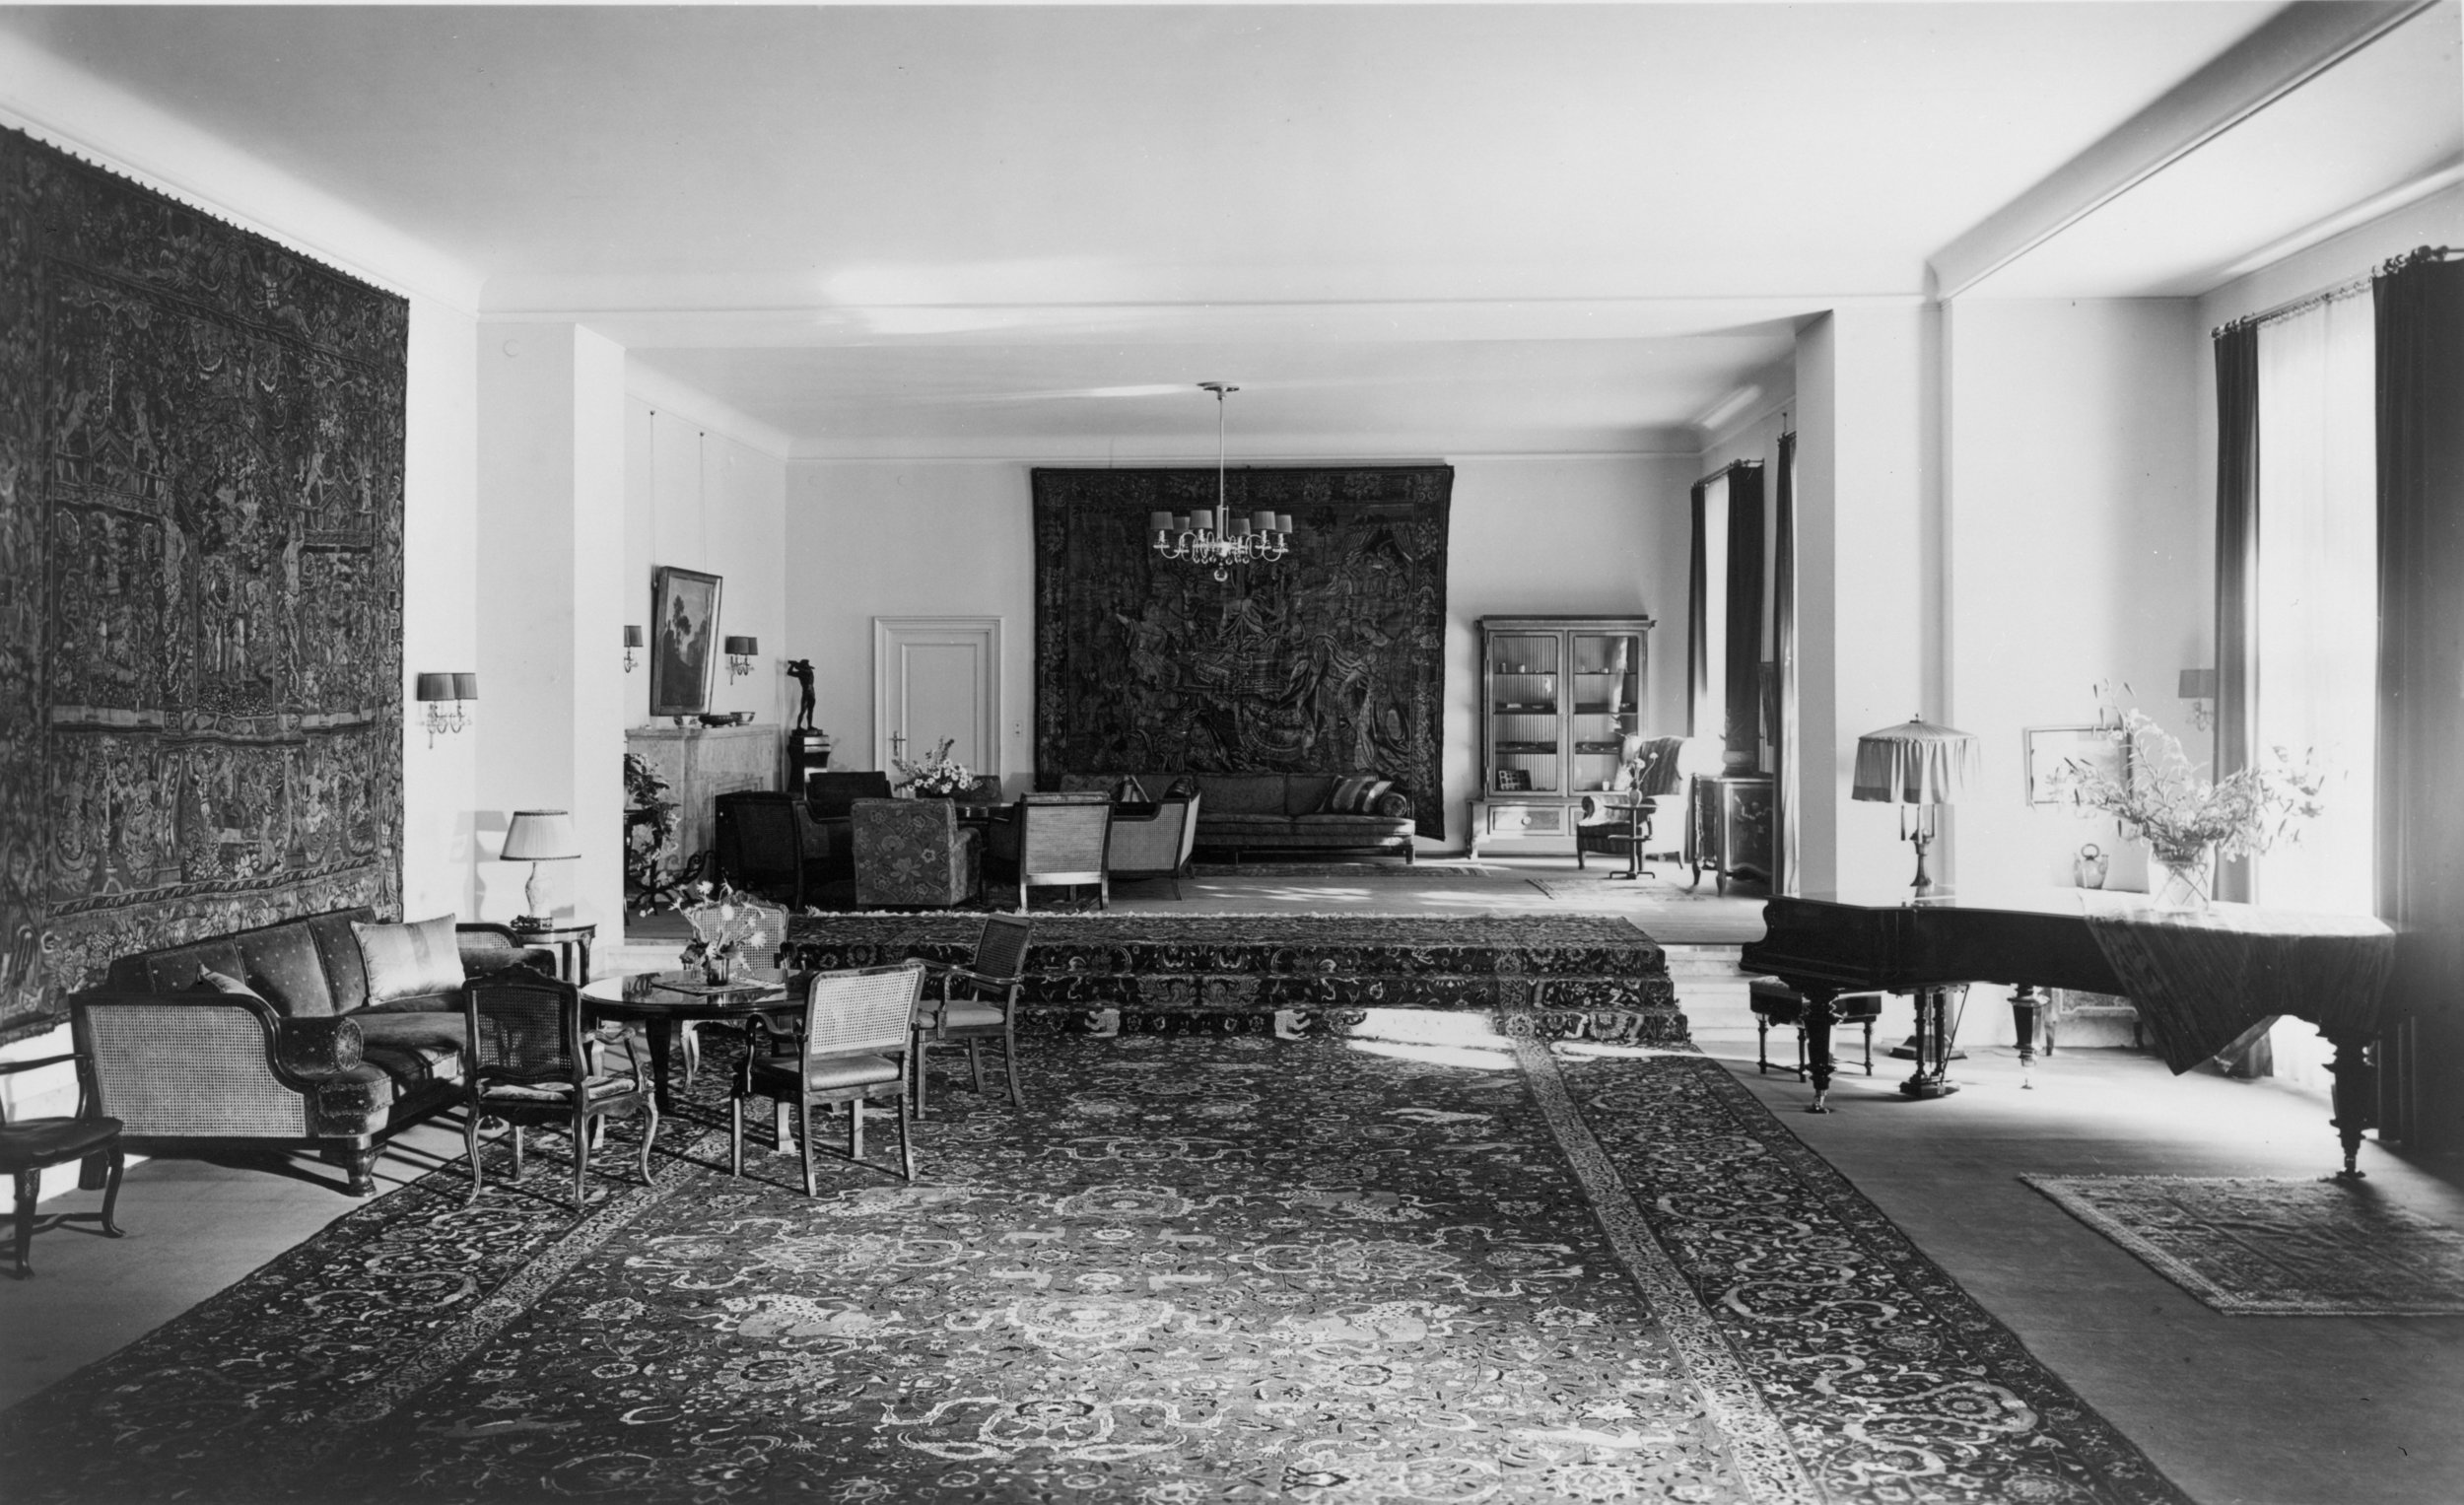 Reception Hall on the ground floor of the Old Chancellery in Berlin after the renovation by the Atelier Troost, c. 1934. Photograph by Heinrich Hoffman, Library of Congress